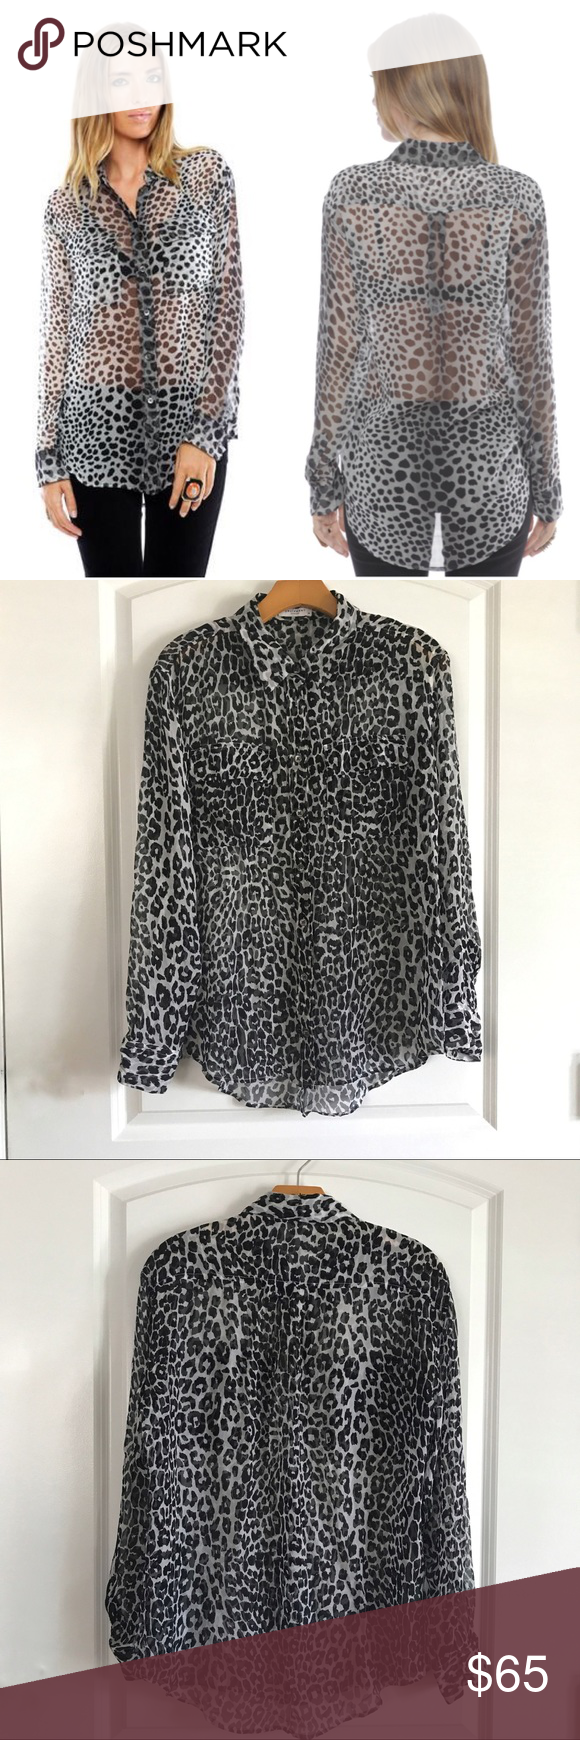 """Equipment Signature Blouse in Raw Cat Print 100% silk button sheer top. Long hem in the back with curved hem. Black and white animal print. Long sleeves with two chest pockets. Pit to pit 21"""" Length front 26"""", back 29"""" Equipment Tops Button Down Shirts"""